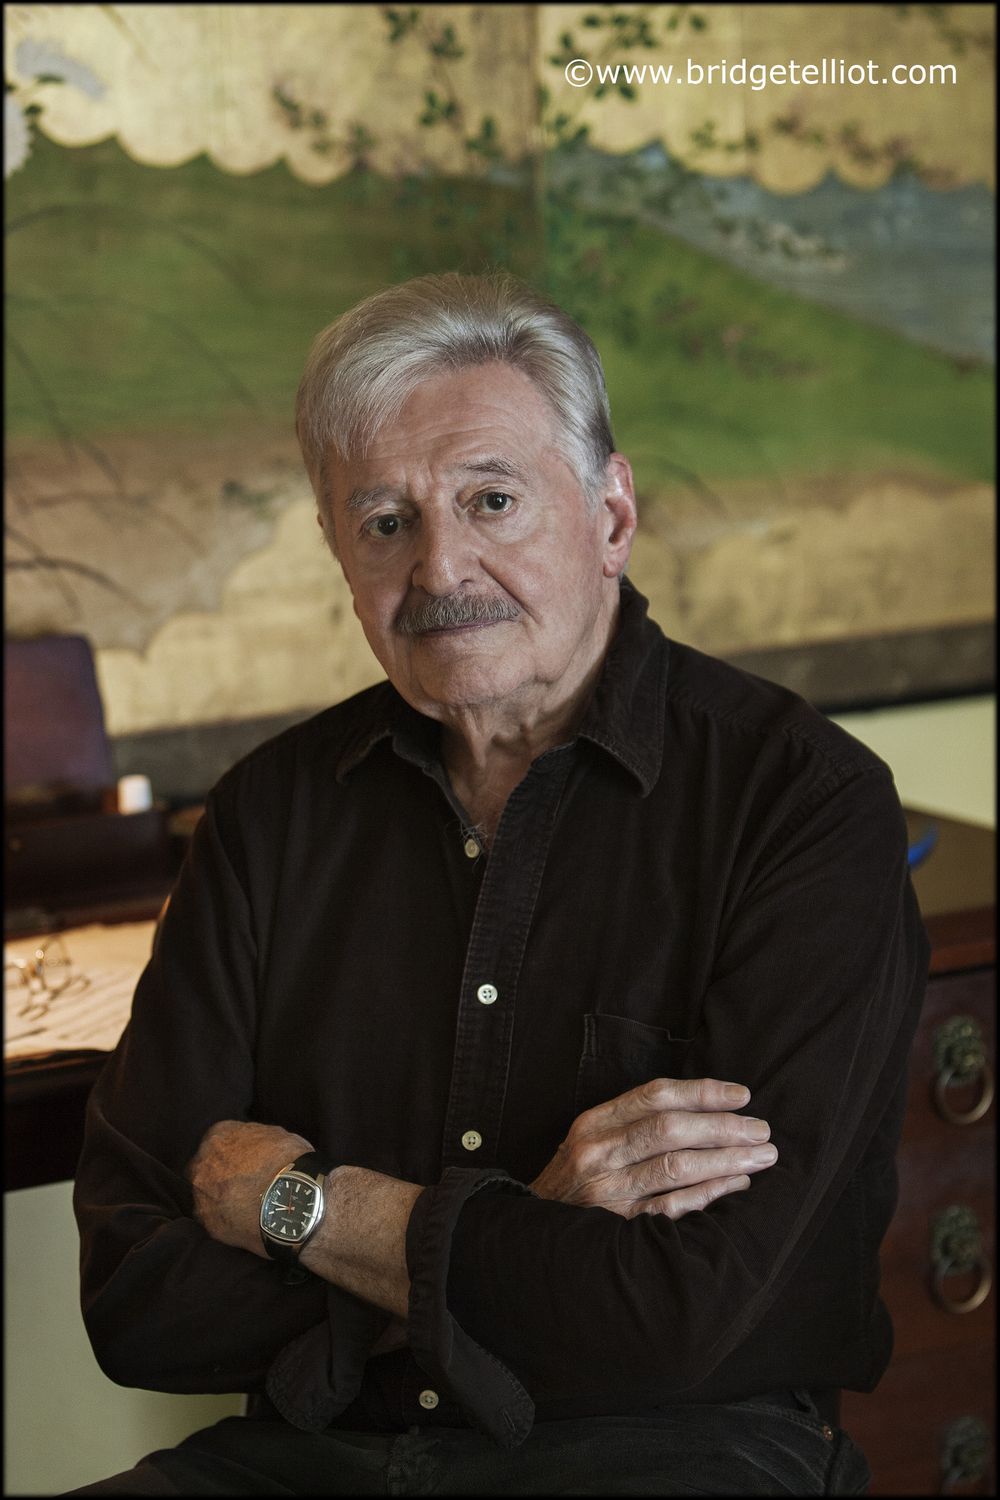 The late Peter Sculthorpe, composer